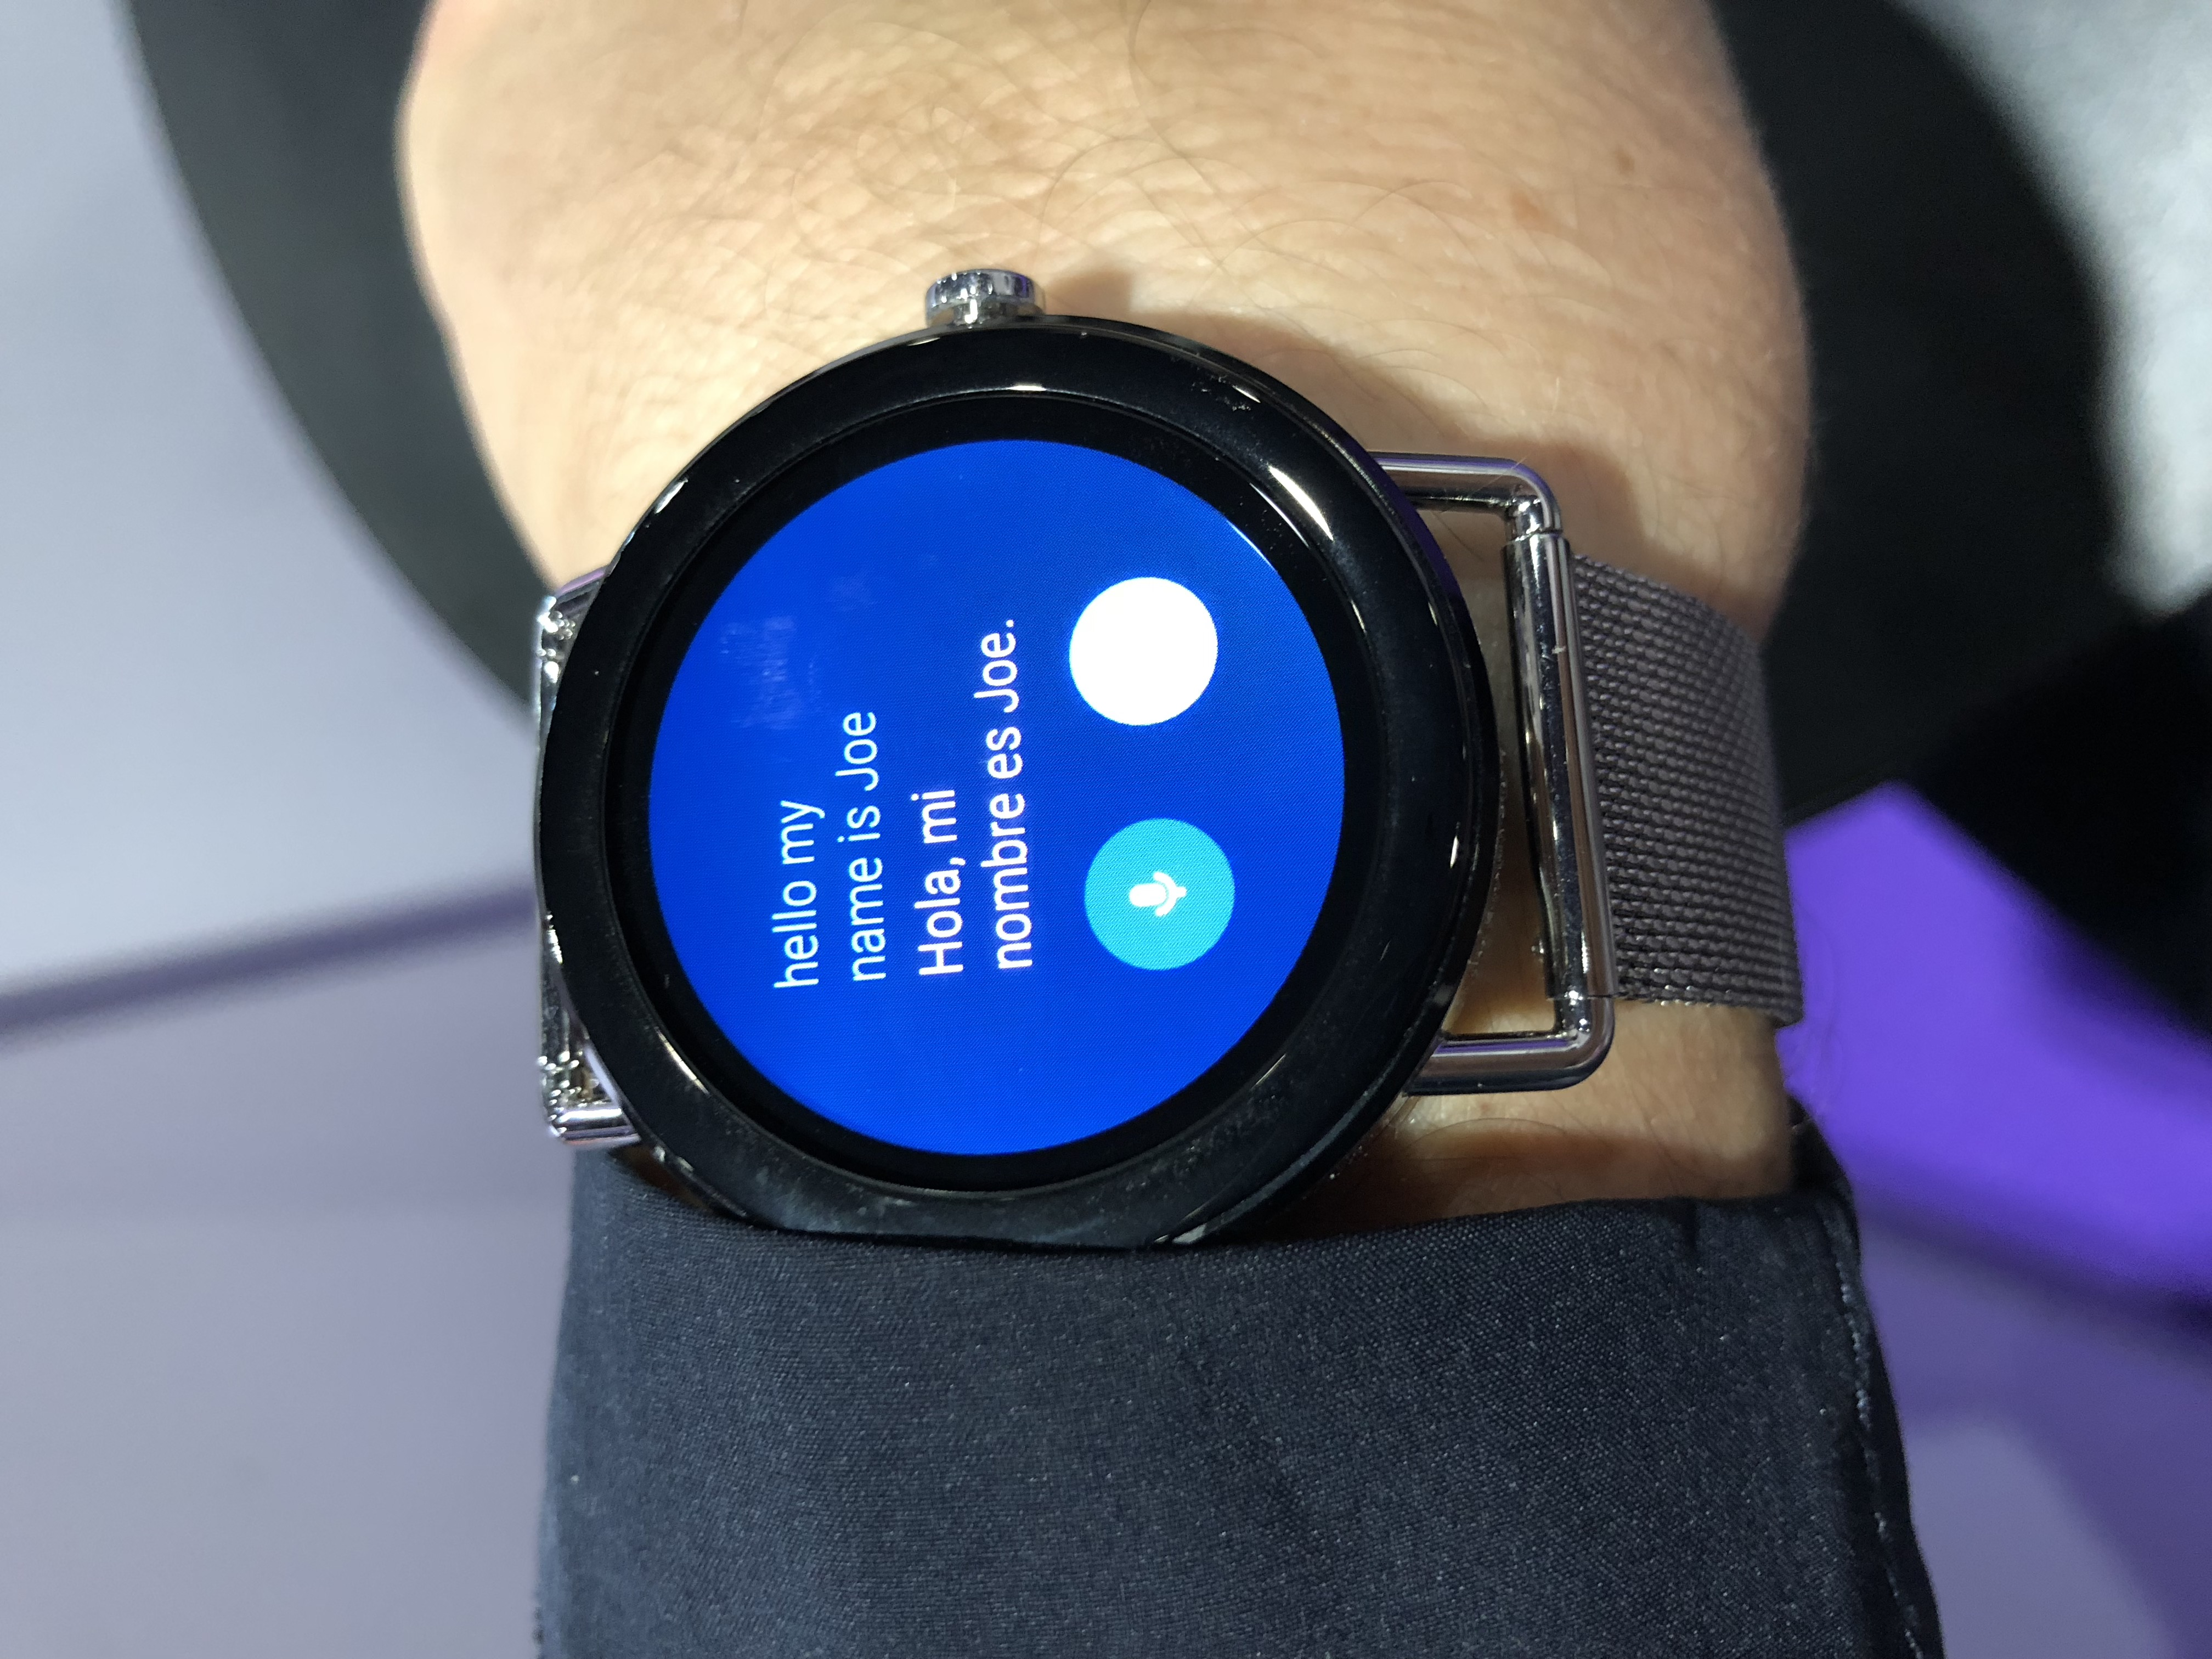 The Skagen Falster is a high fashion Android wearable | TechCrunch